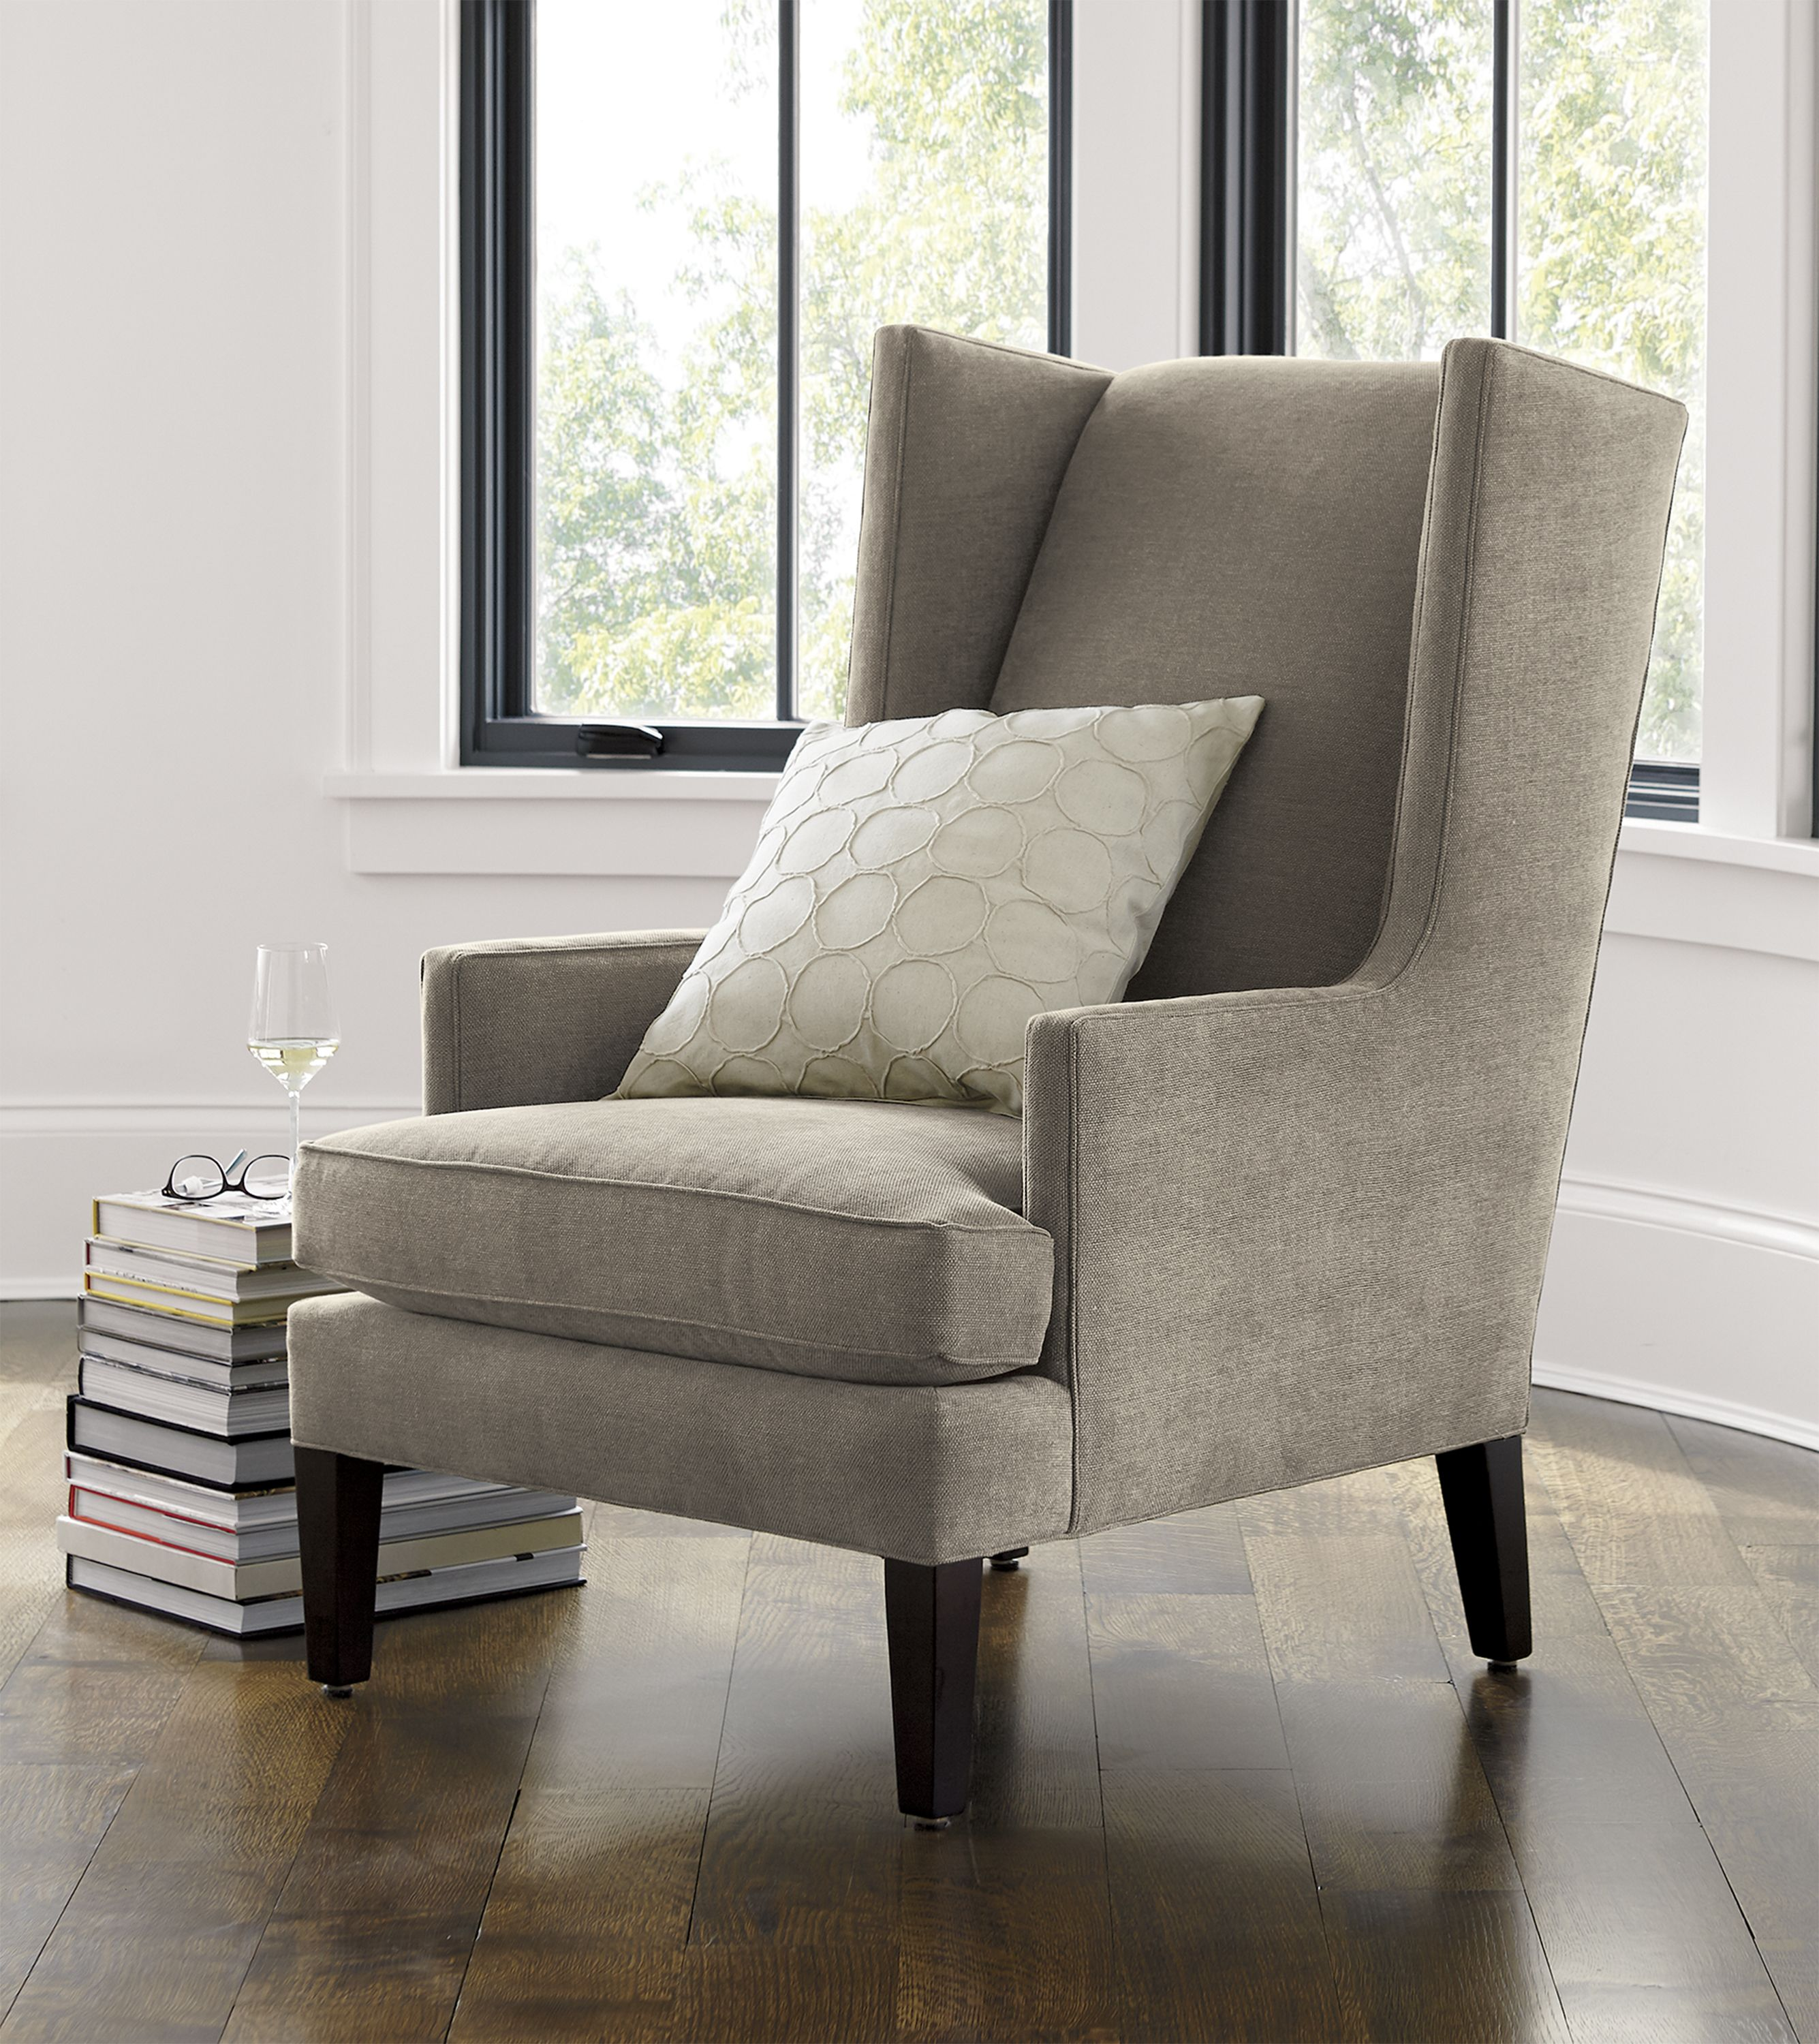 Our Modern Wing Chair Is A Casual Update On The Traditional Parlor